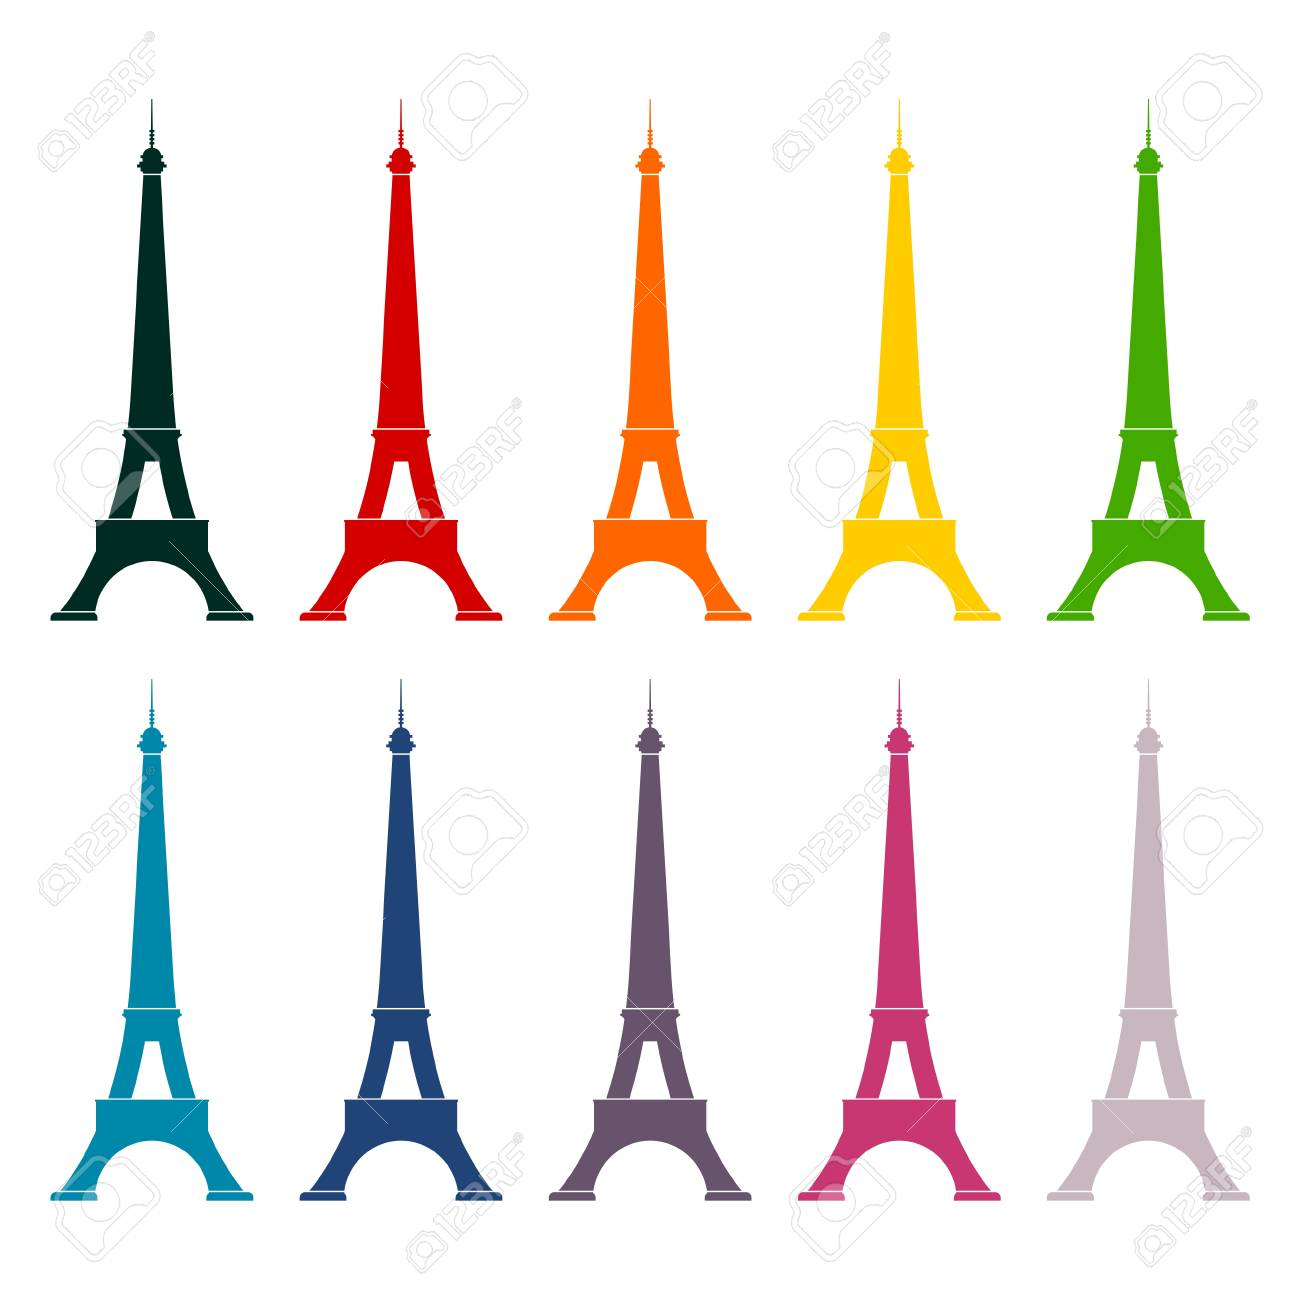 Eiffel tower vector illustration icons set royalty free cliparts eiffel tower vector illustration icons set stock vector 58074298 thecheapjerseys Gallery